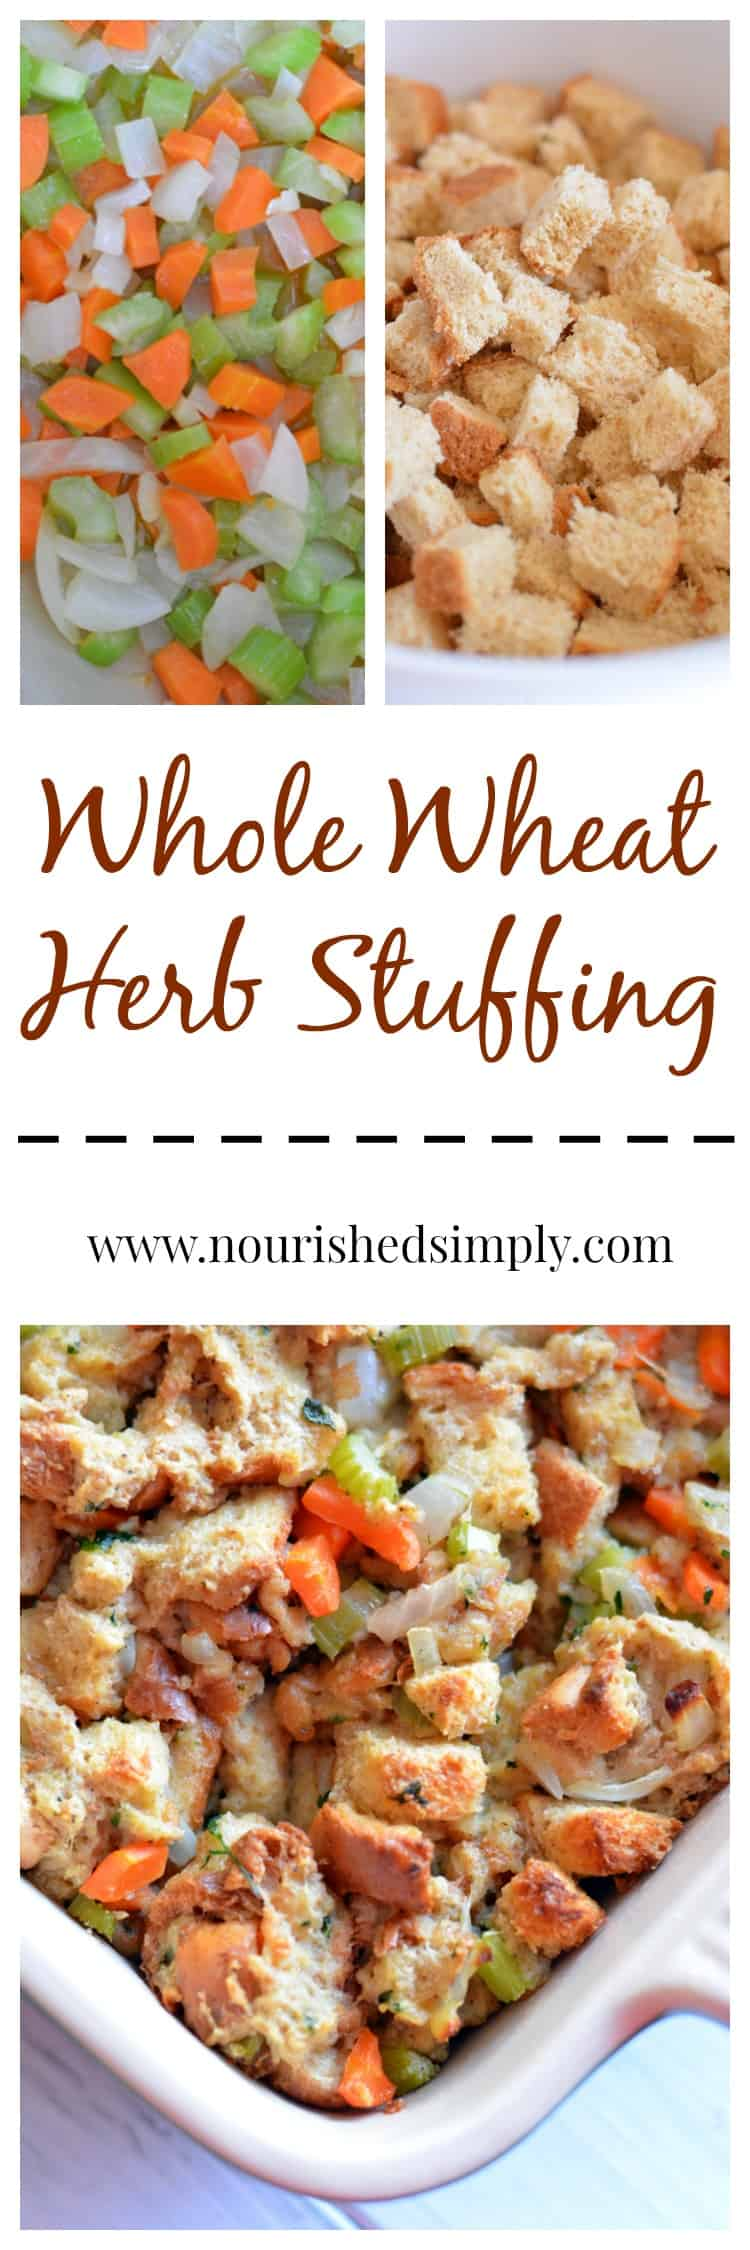 Homemade herb whole wheat stuffing filled with veggies is a healthy alternative to boxed stuffing for your Thanksgiving meal.